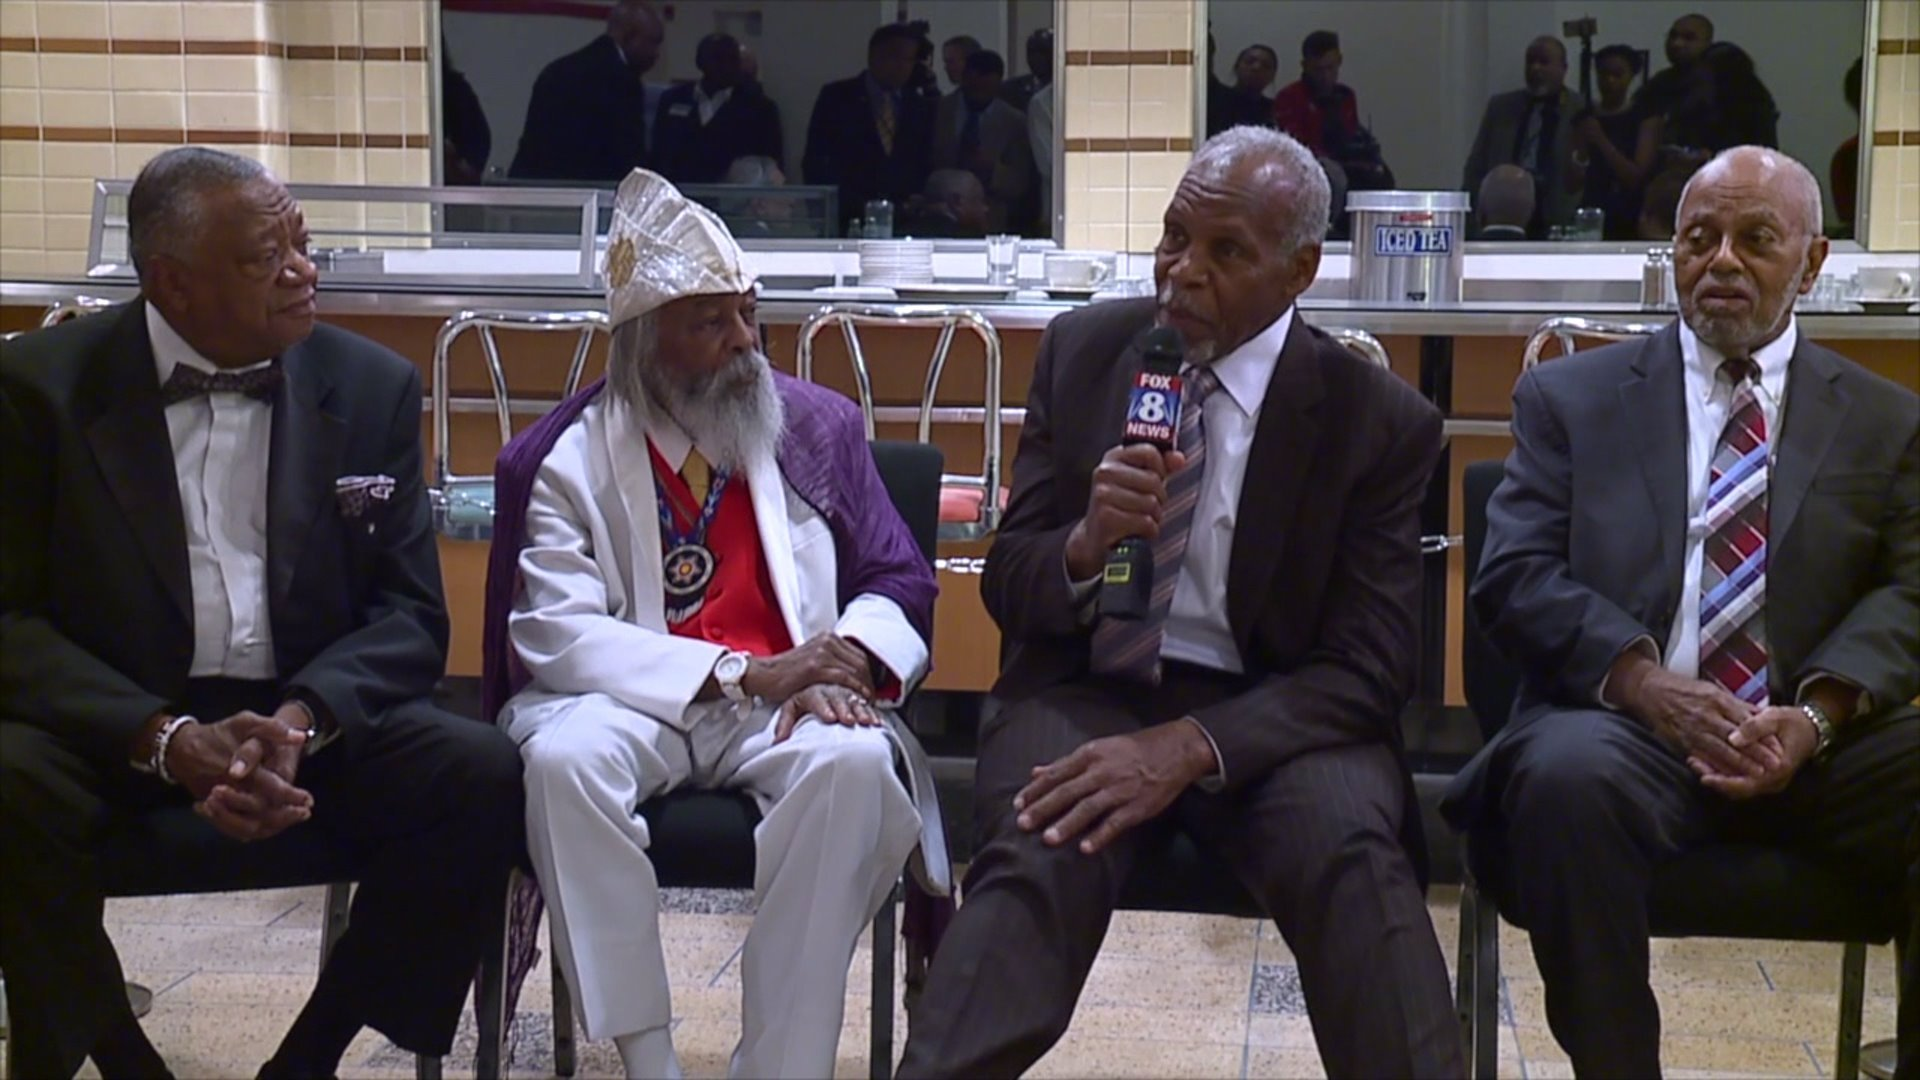 Celebration held to honor the 60th anniversary of the Greensboro sit-in